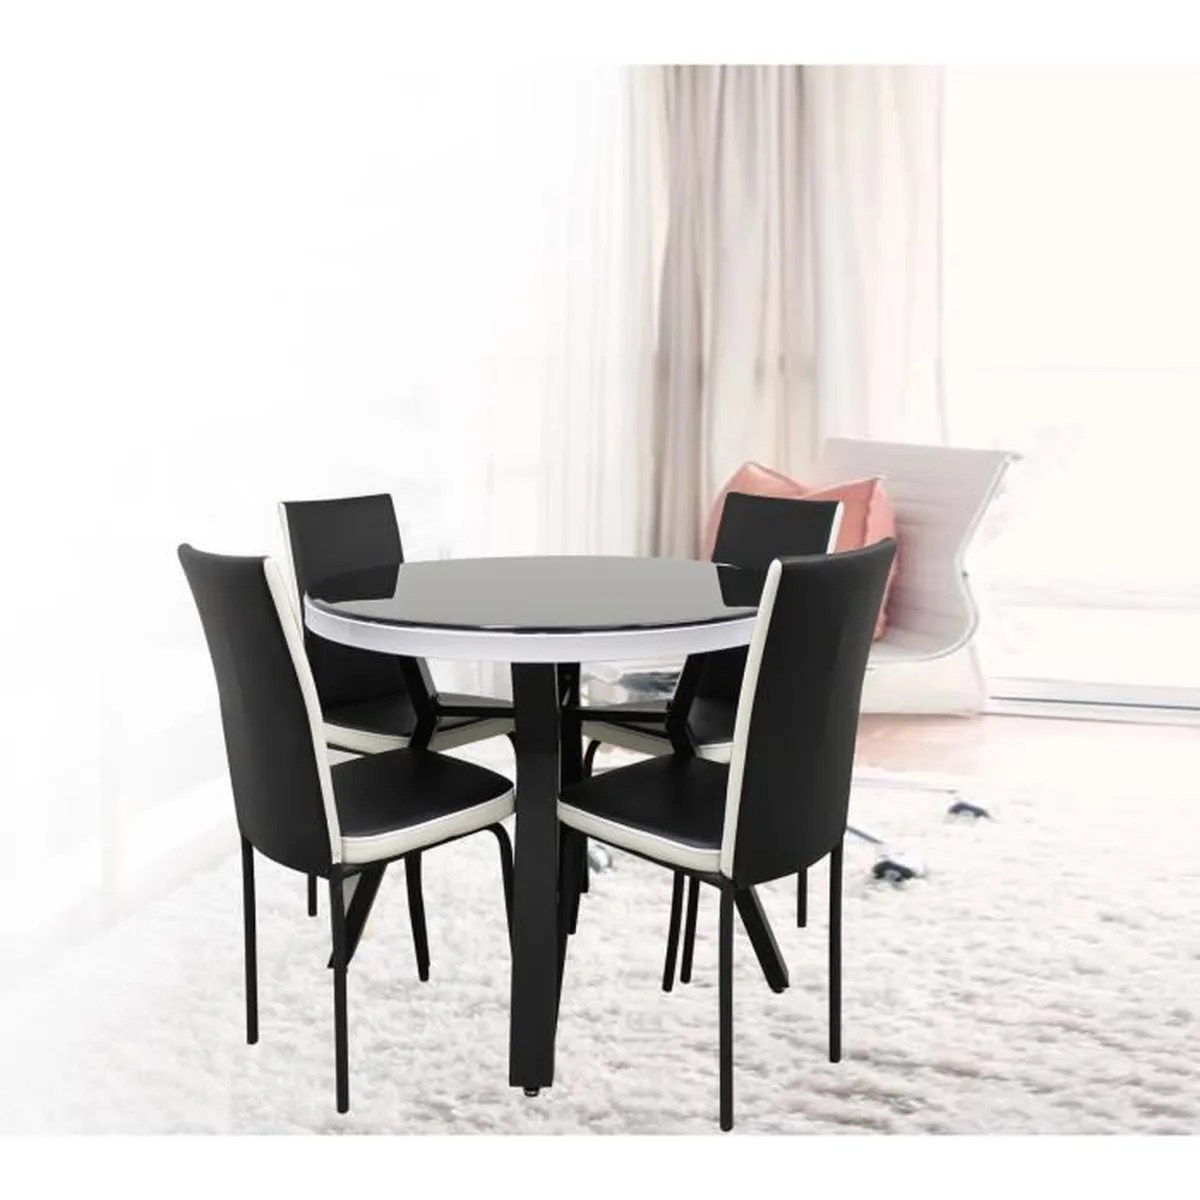 Table Avec Chaise Table Avec Chaise - Achat / Vente Table De Cuisine Table